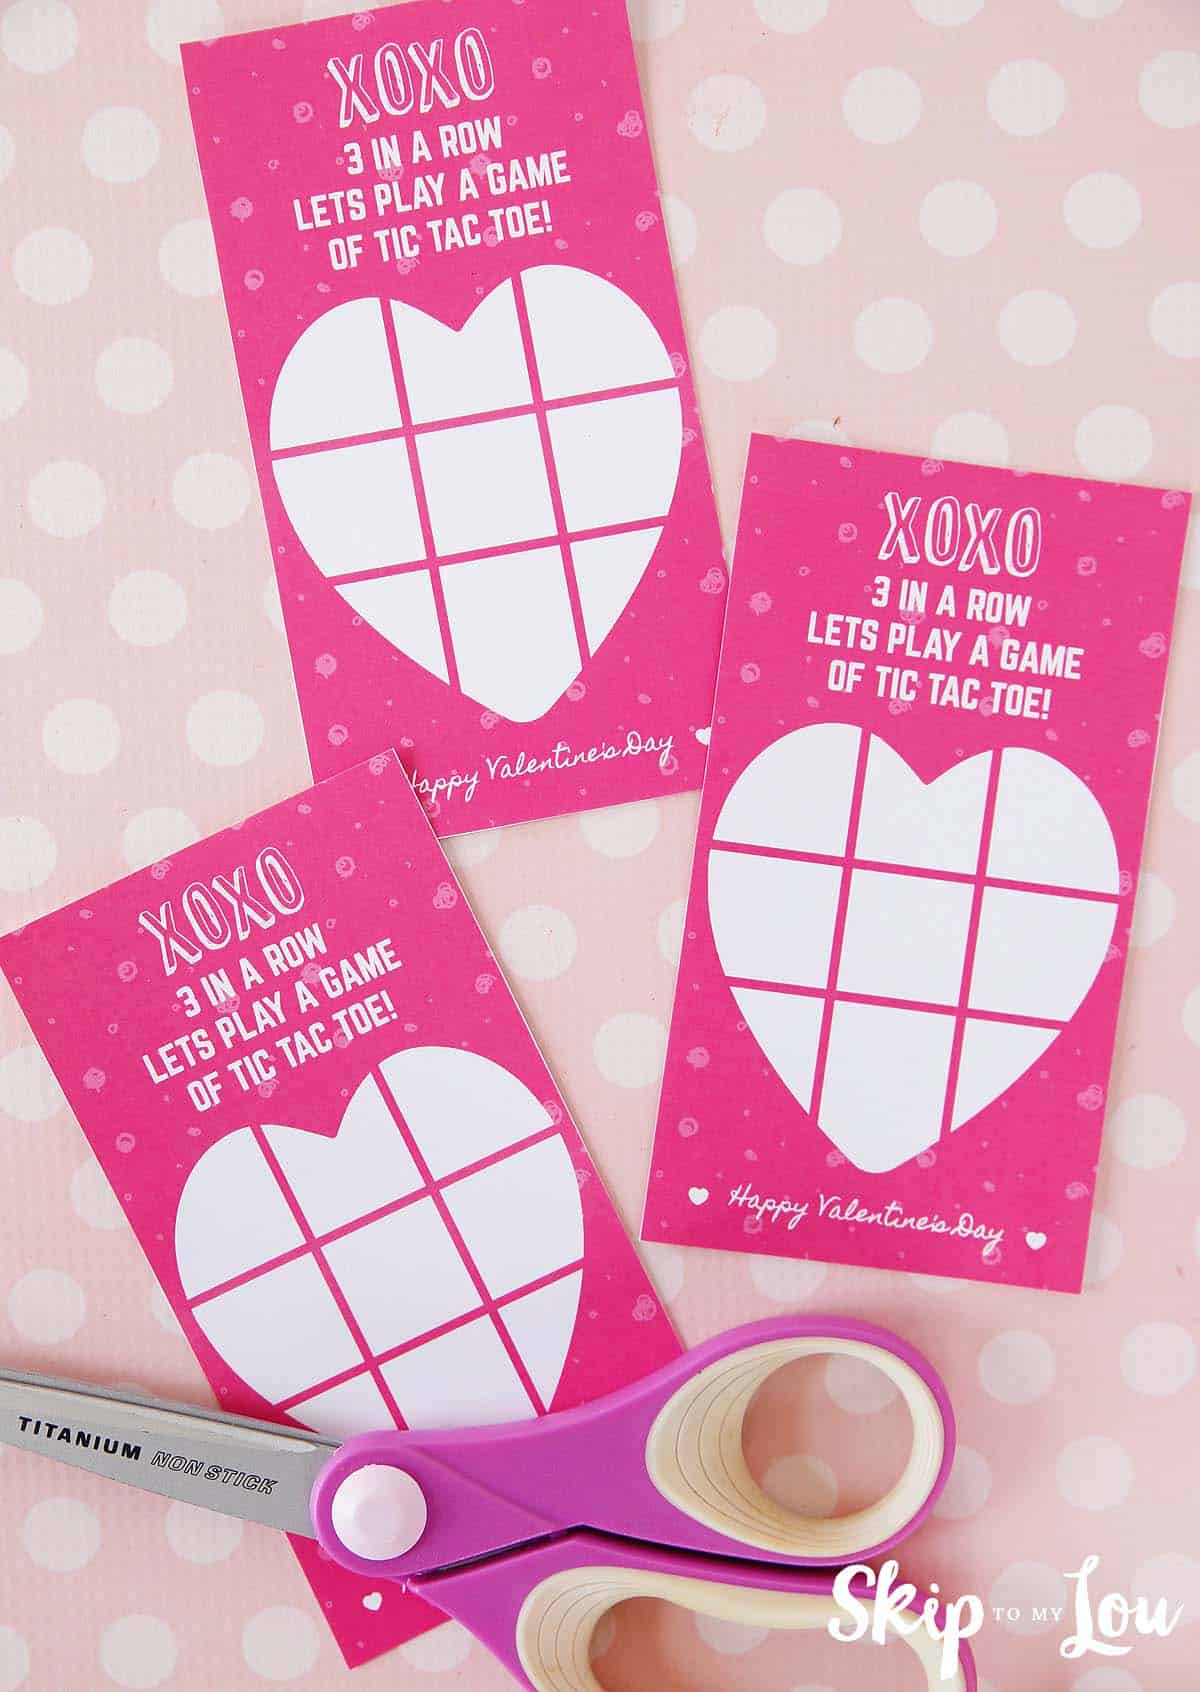 picture relating to Tic Tac Toe Valentine Printable titled Printable Tic Tac Toe Valentine Pass up In direction of My Lou